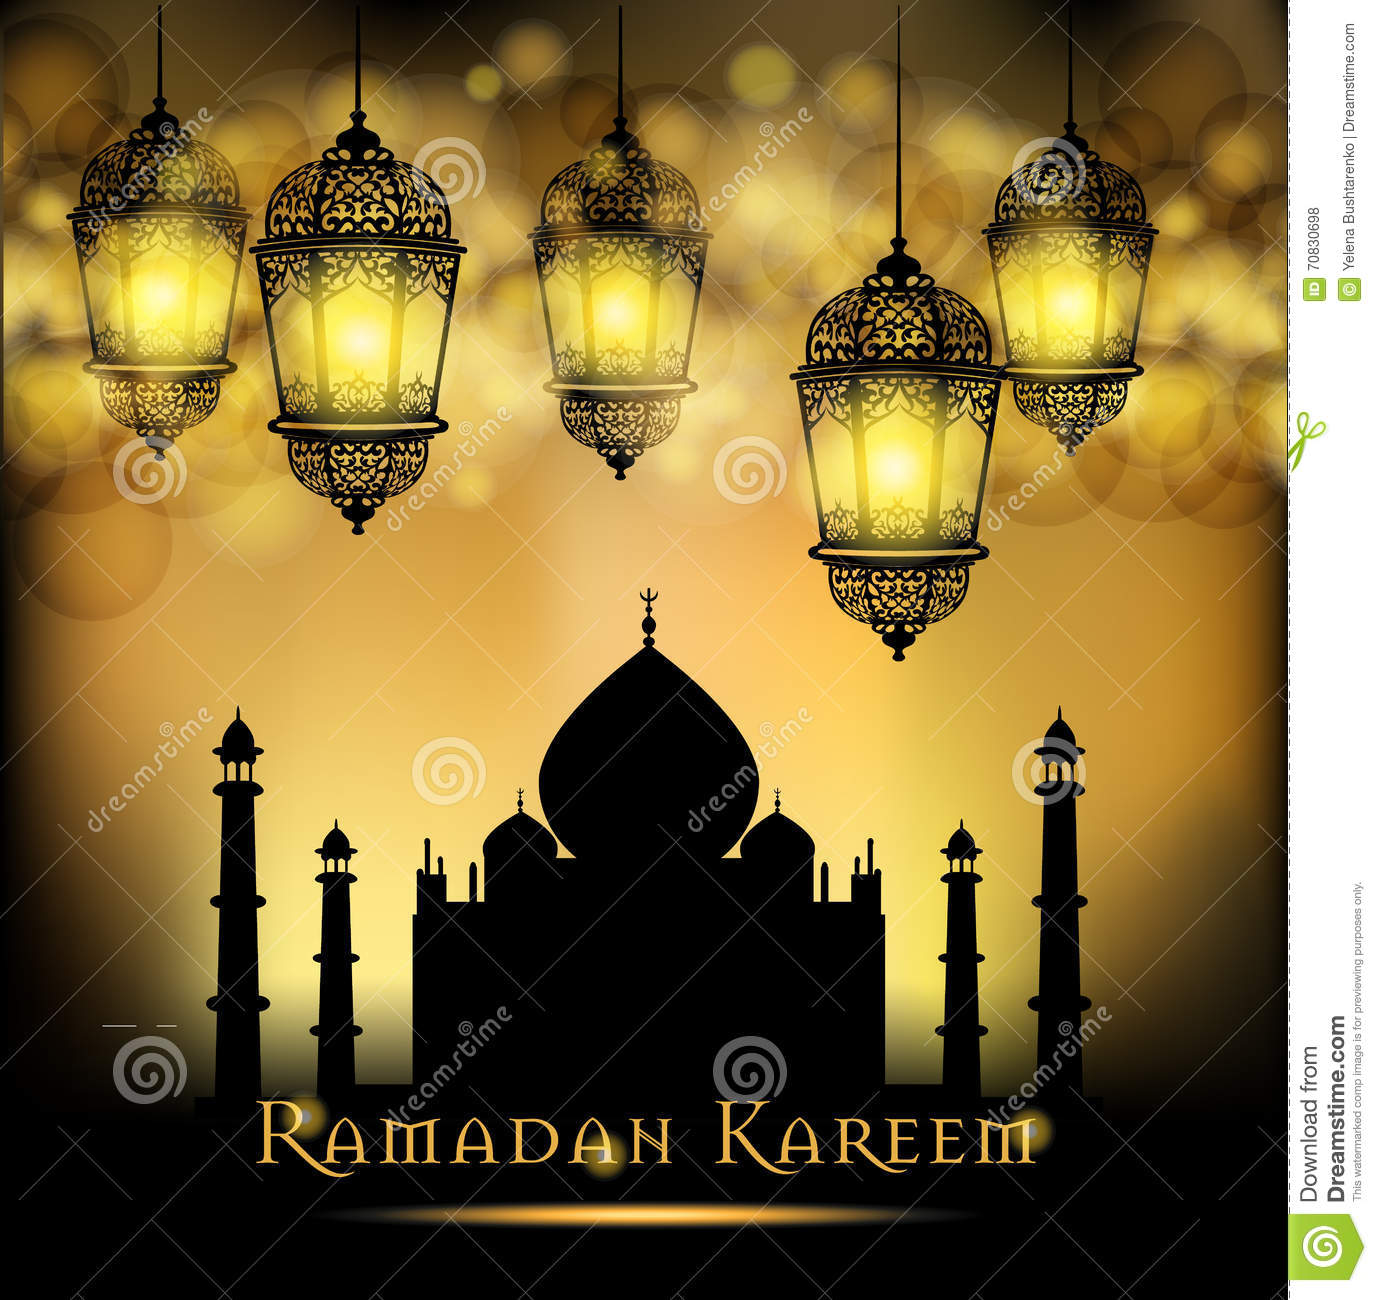 Ramadan Kareem Greeting On Blurred Background With Beautiful ...